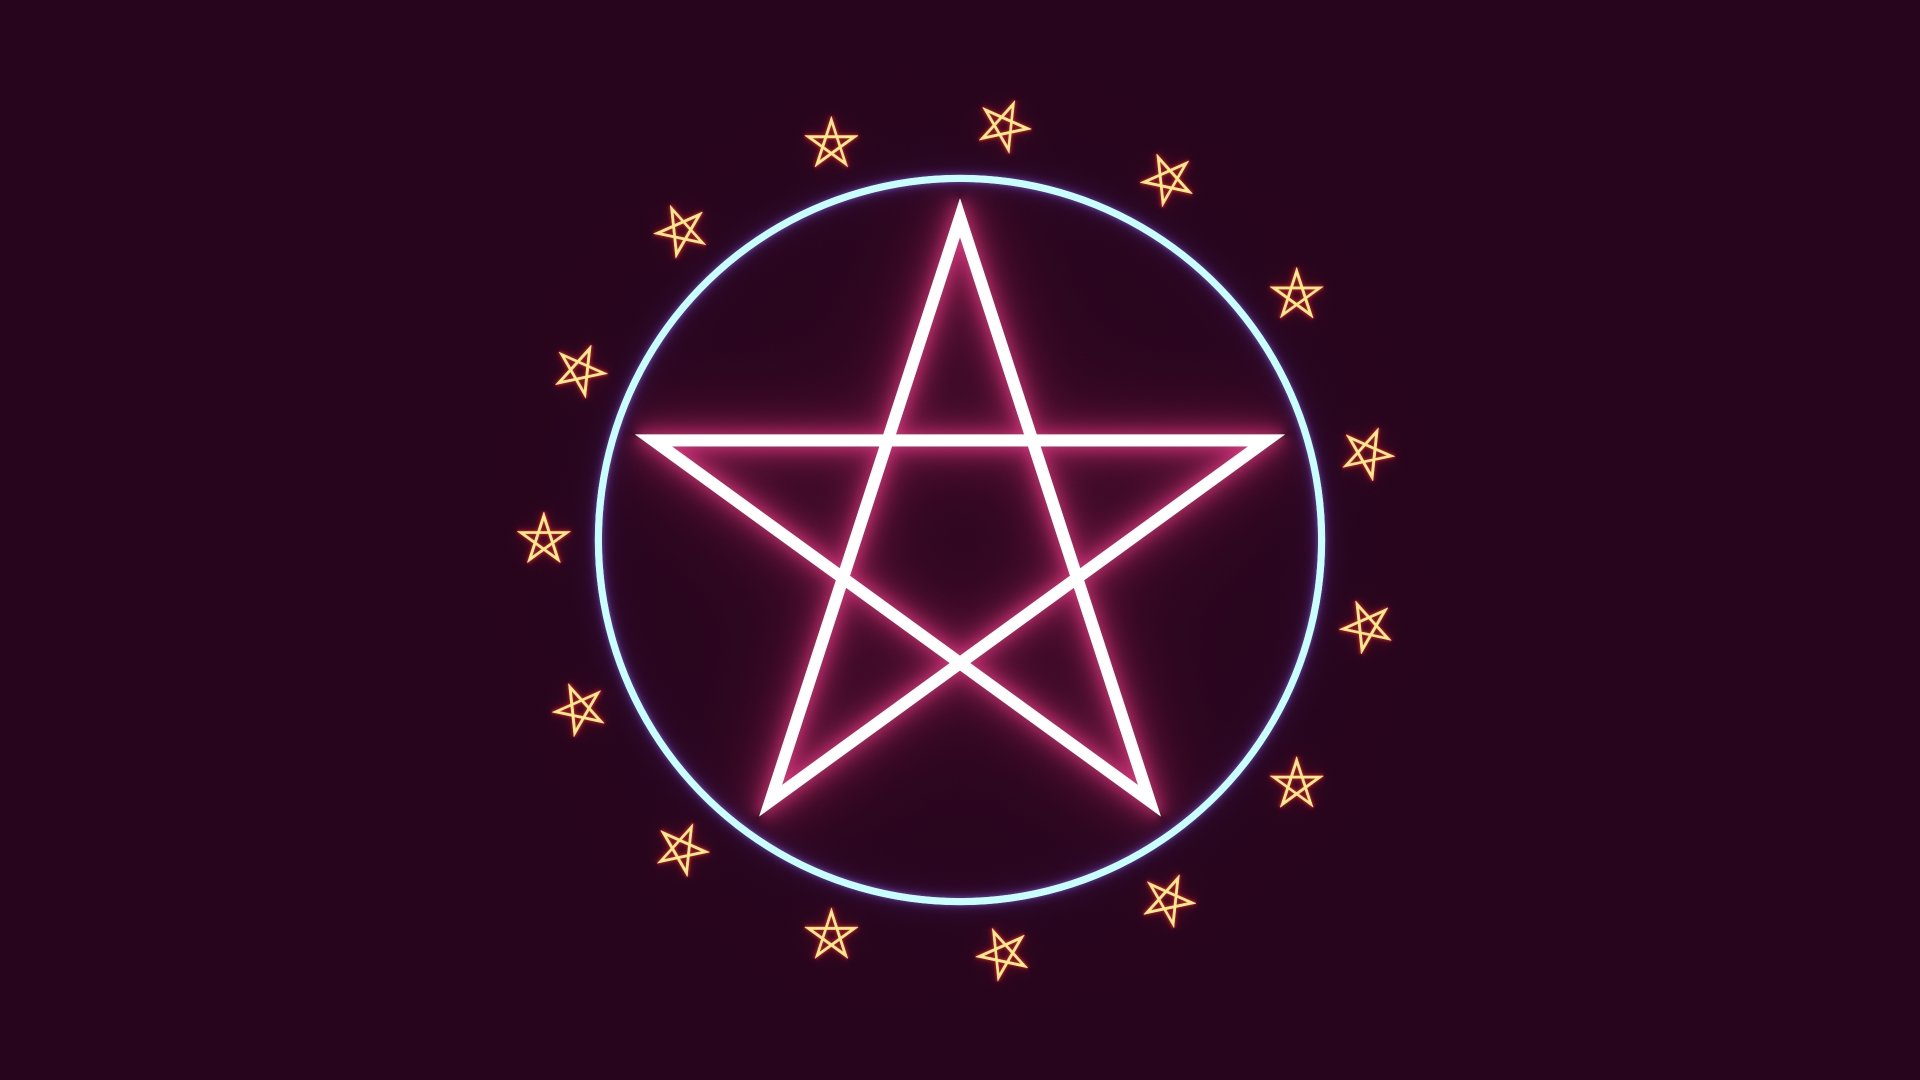 pentagram inside a circle 4k Ultra HD Wallpaper ... |Pentagram Wallpaper Uhd